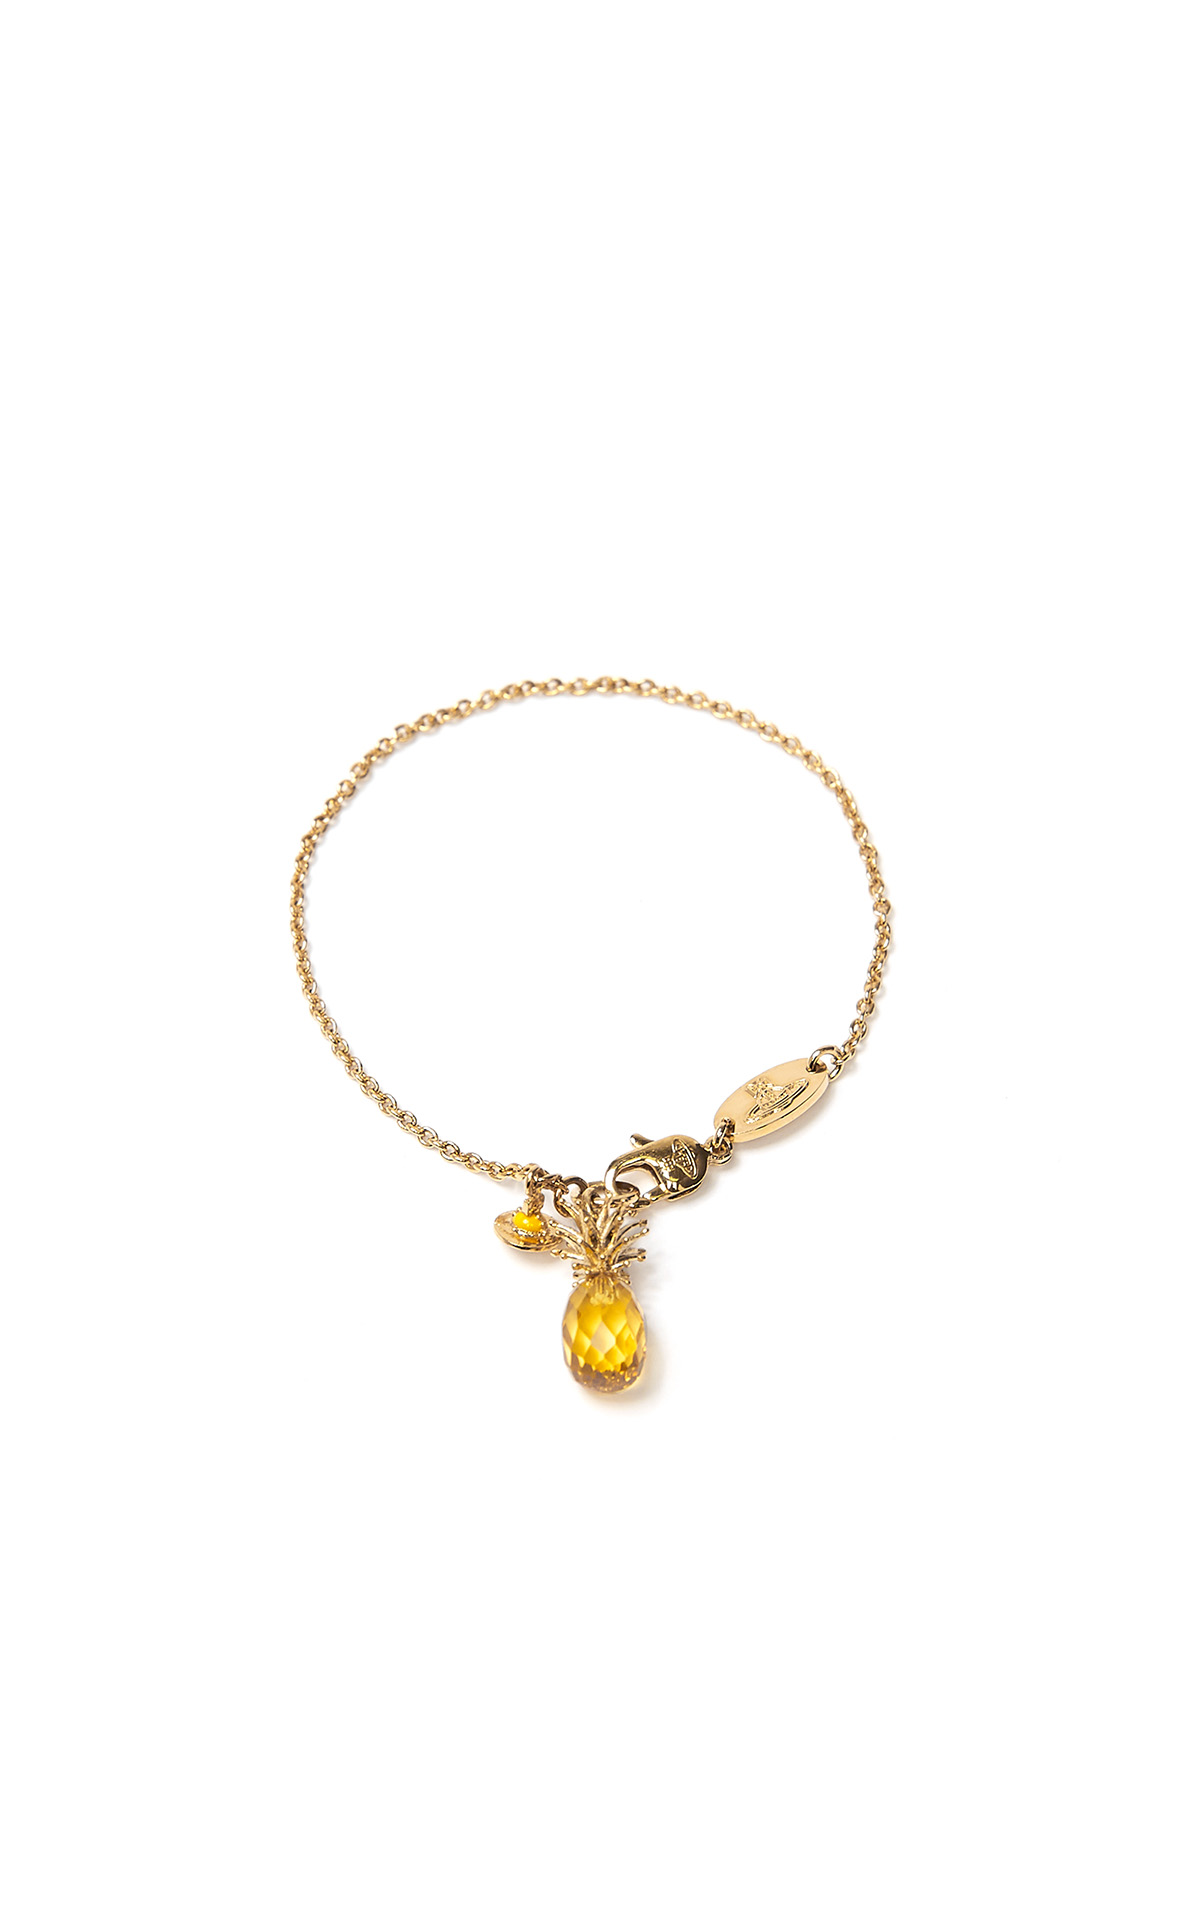 Vivienne Westwood Pineapple bracelet from Bicester Village